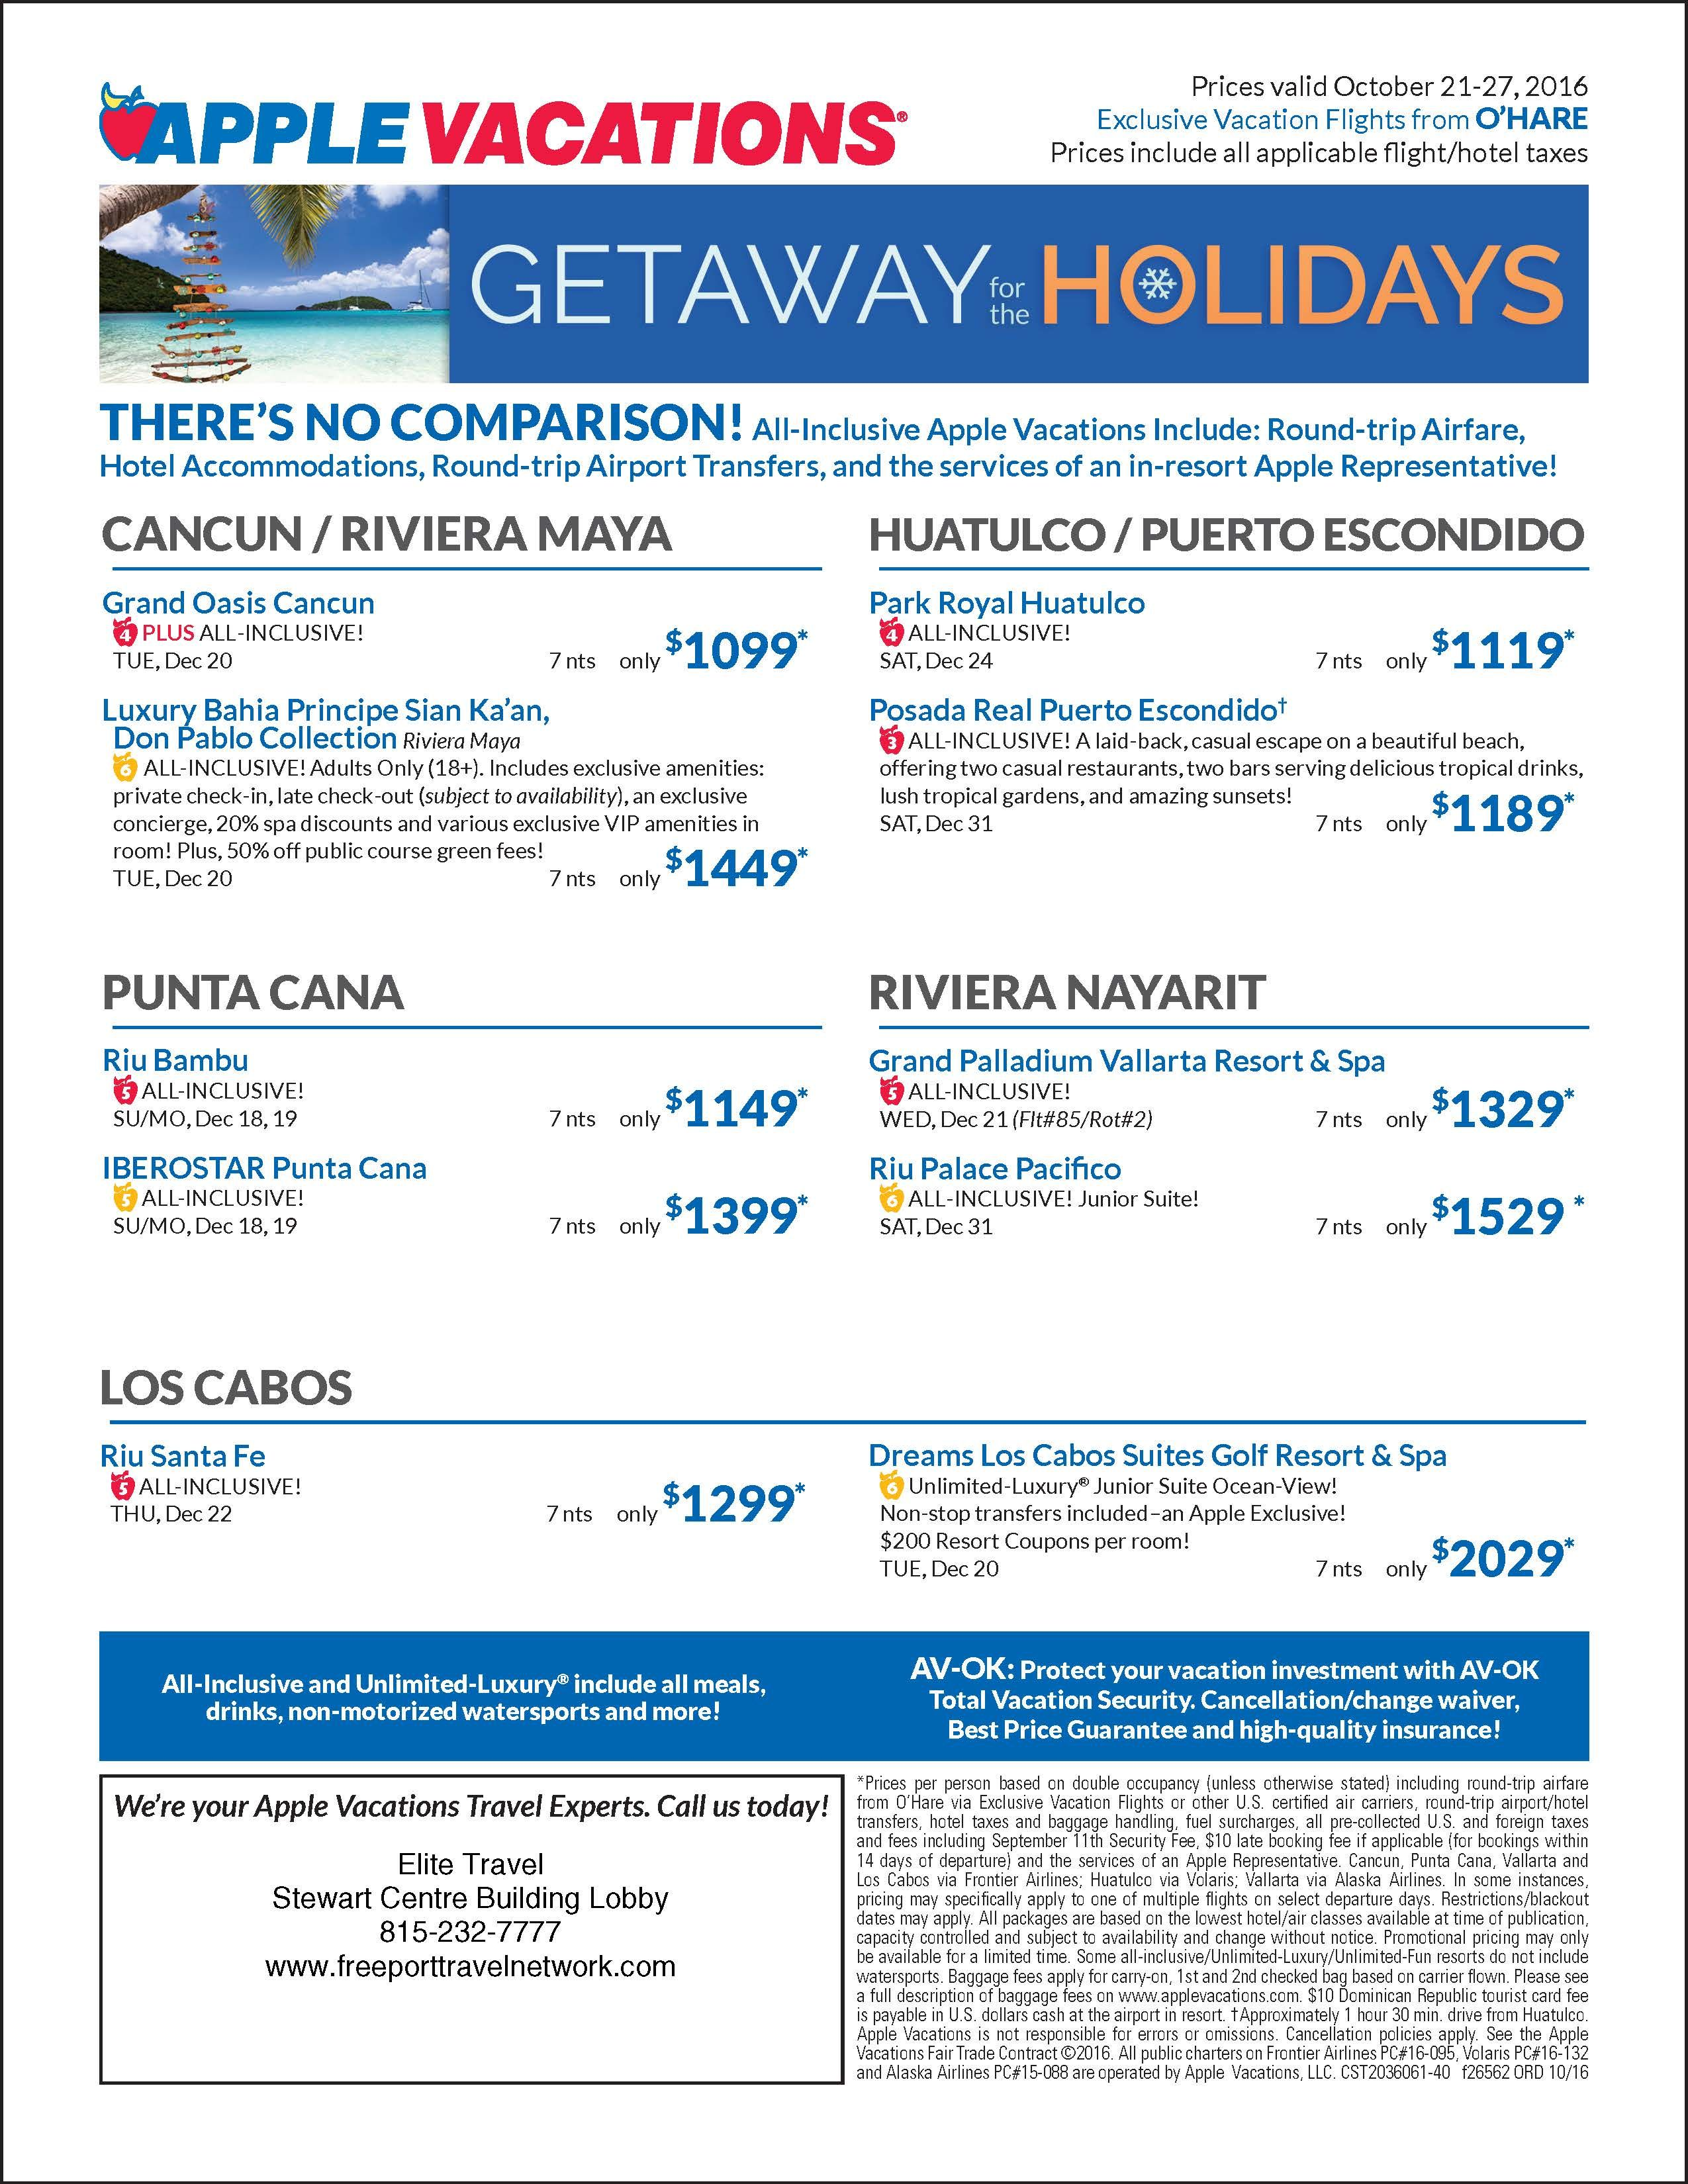 Quick Plan Your Winter Vacation While The Deals Are In